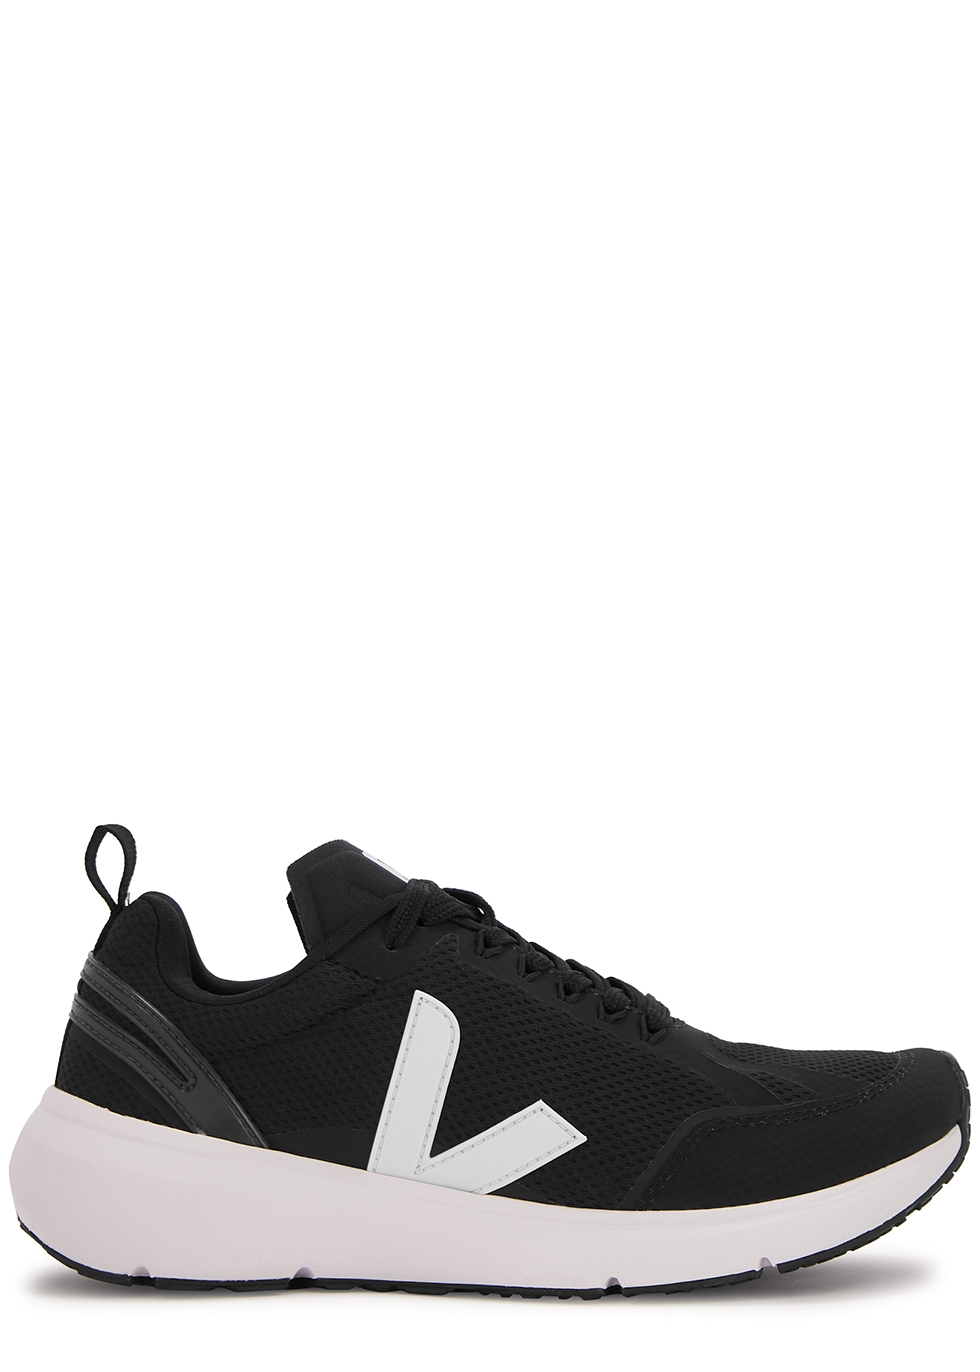 Condor black stretch-knit sneakers